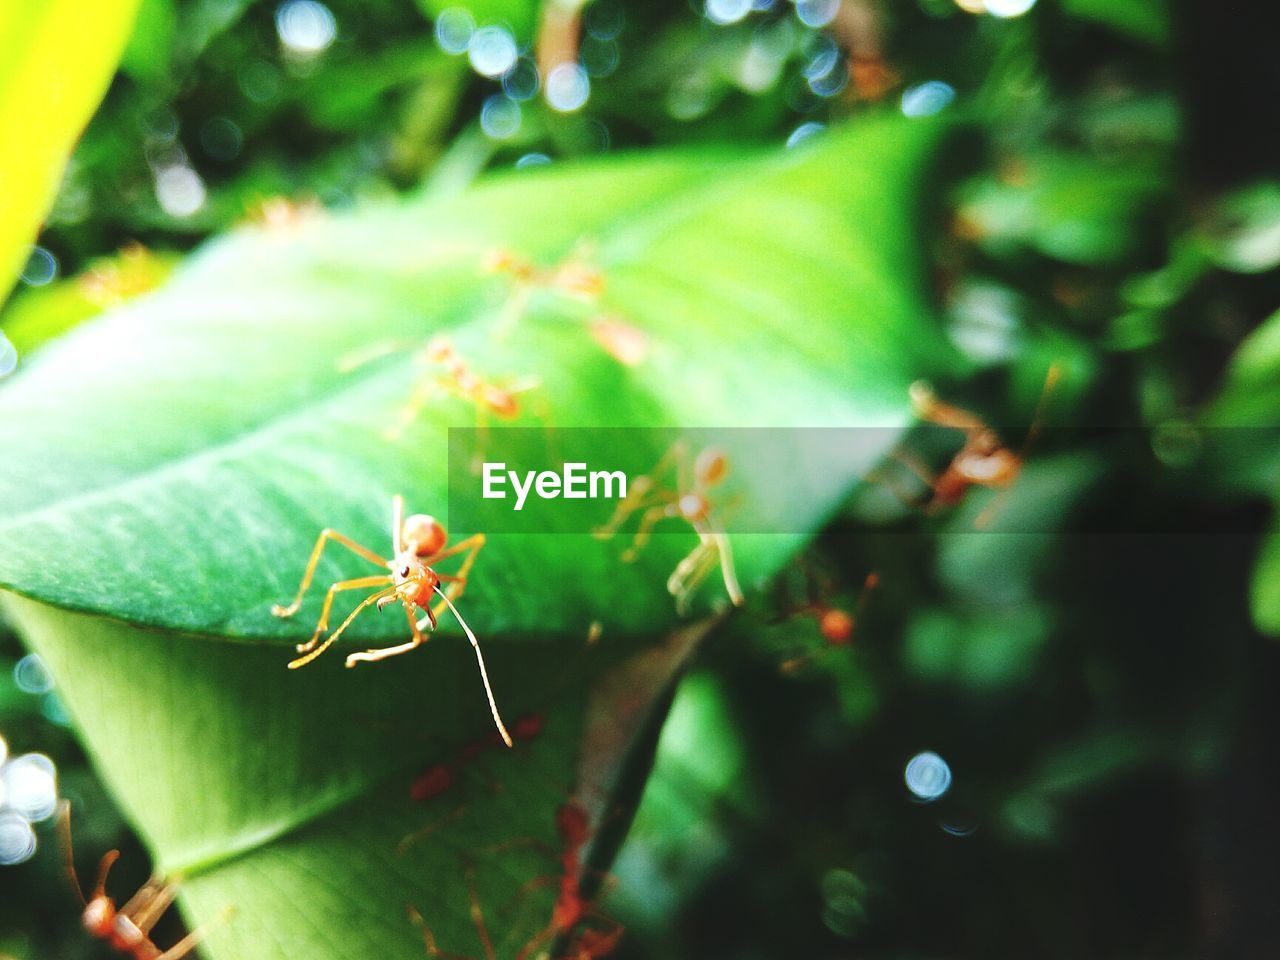 Close-up of ants on leaves